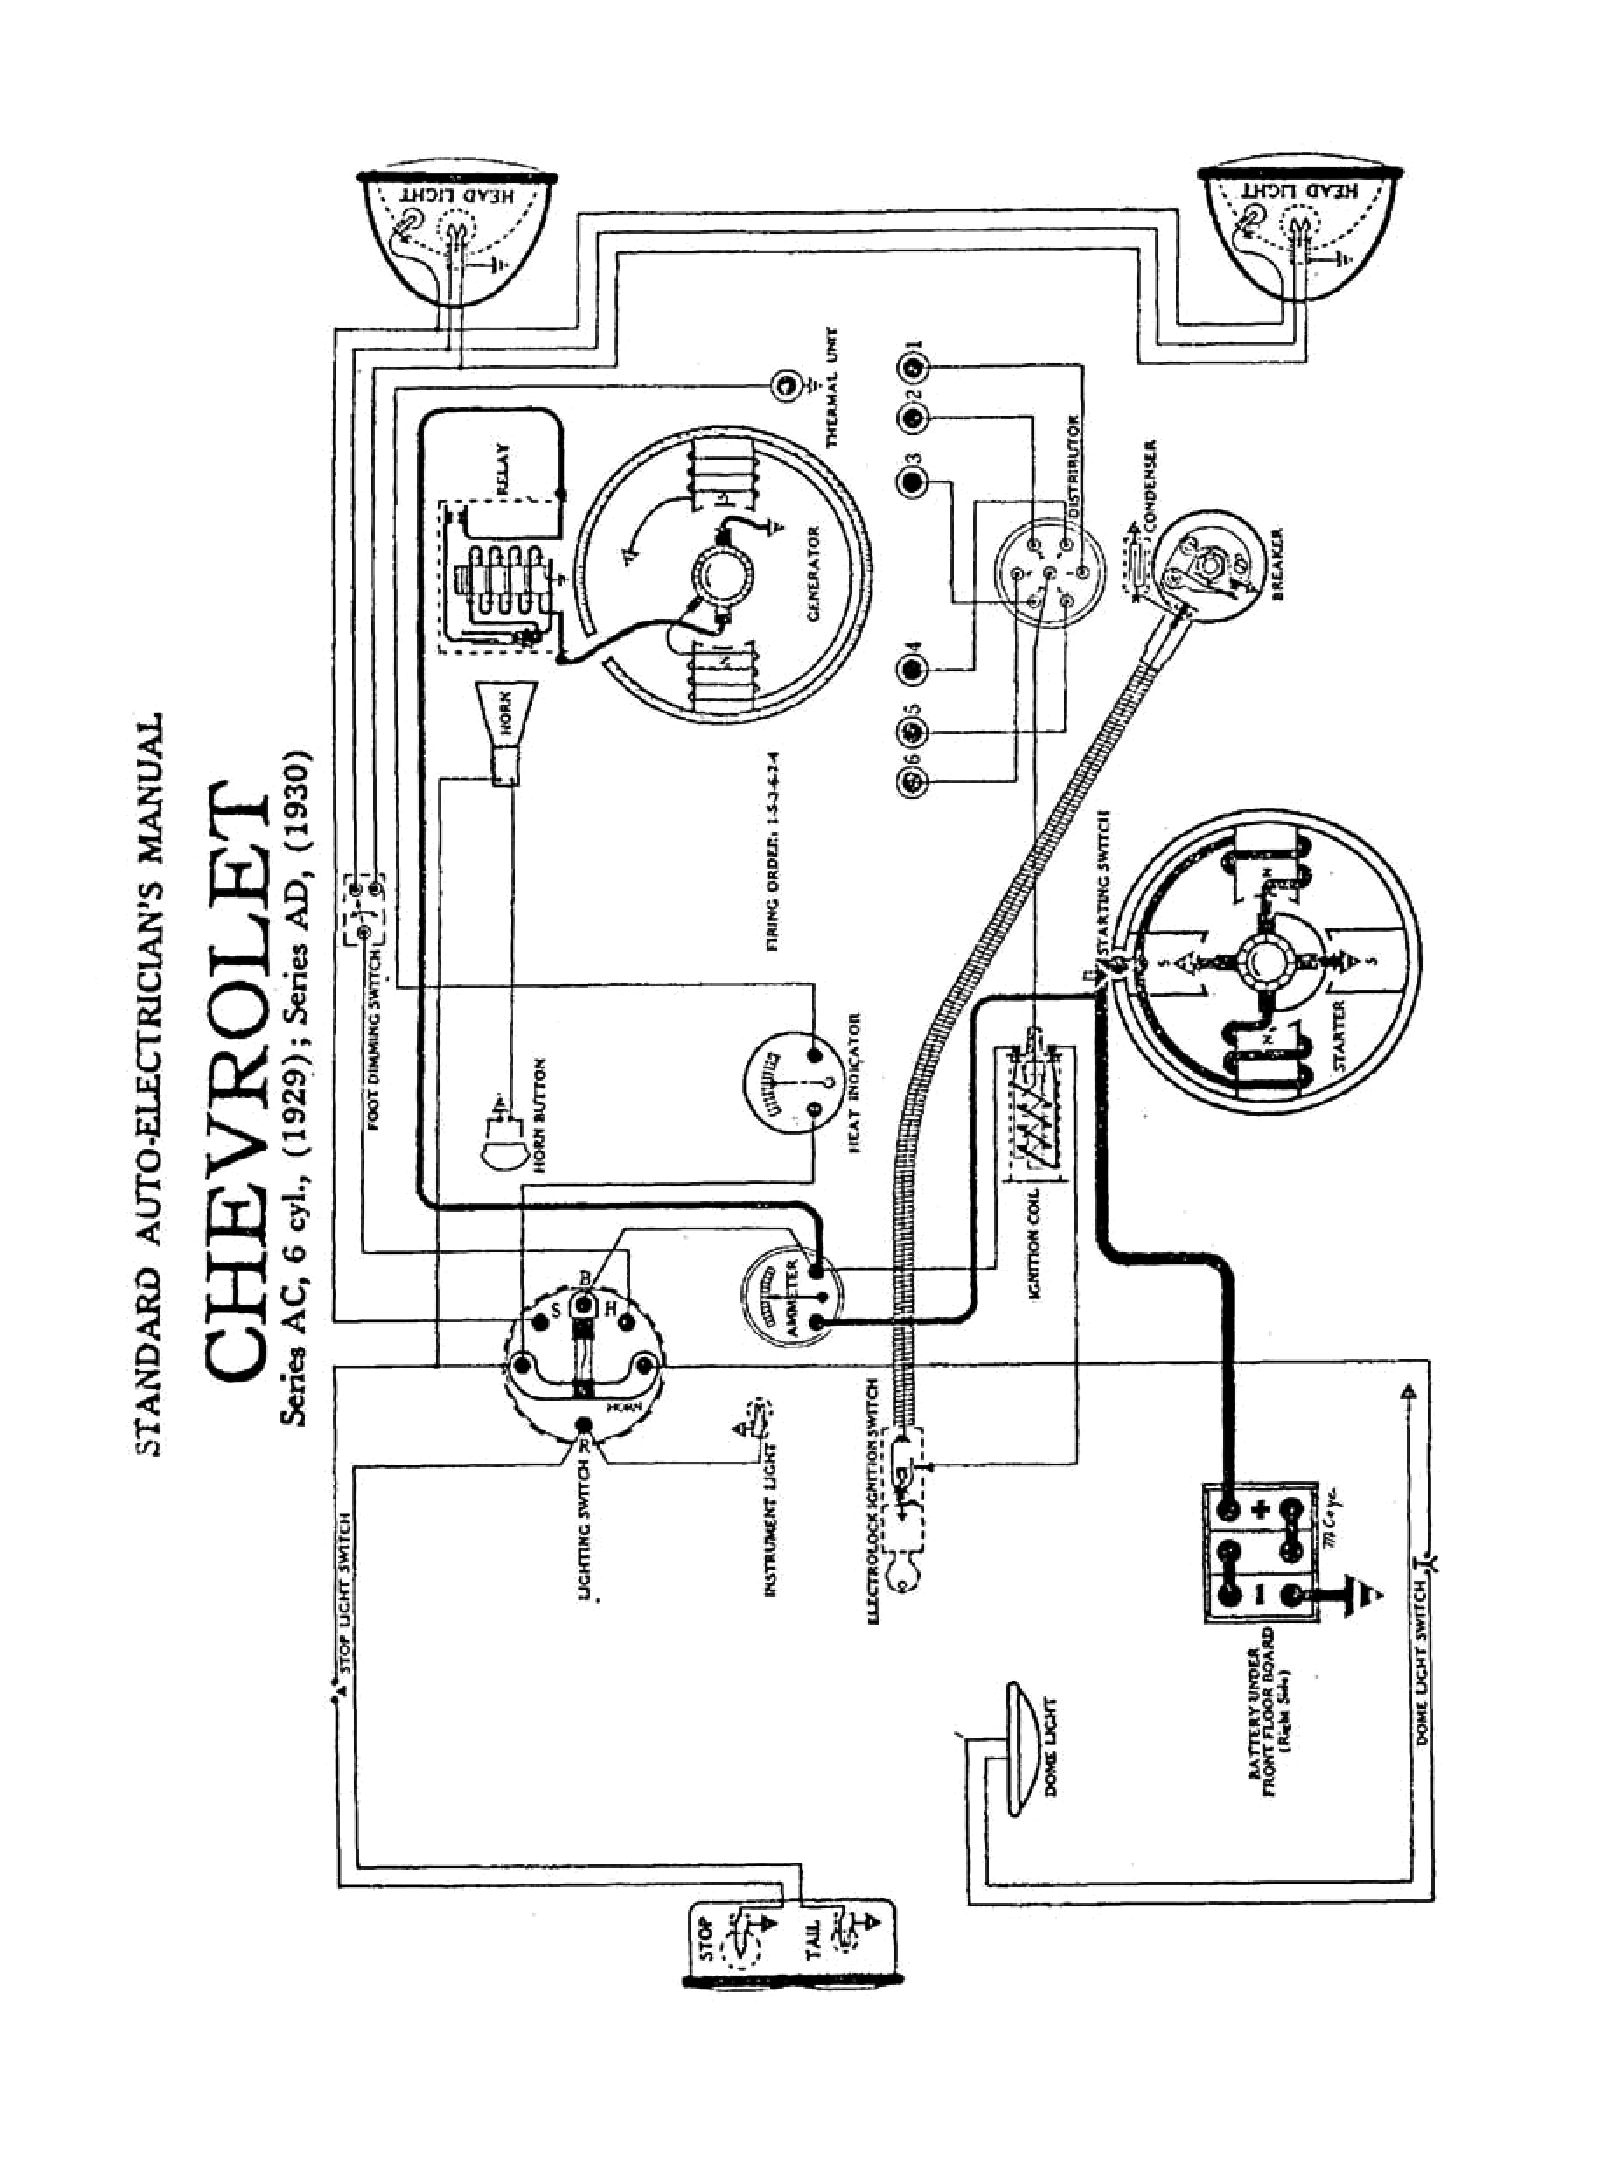 1950 chevy wiring diagram brakes  chevy  auto wiring diagram